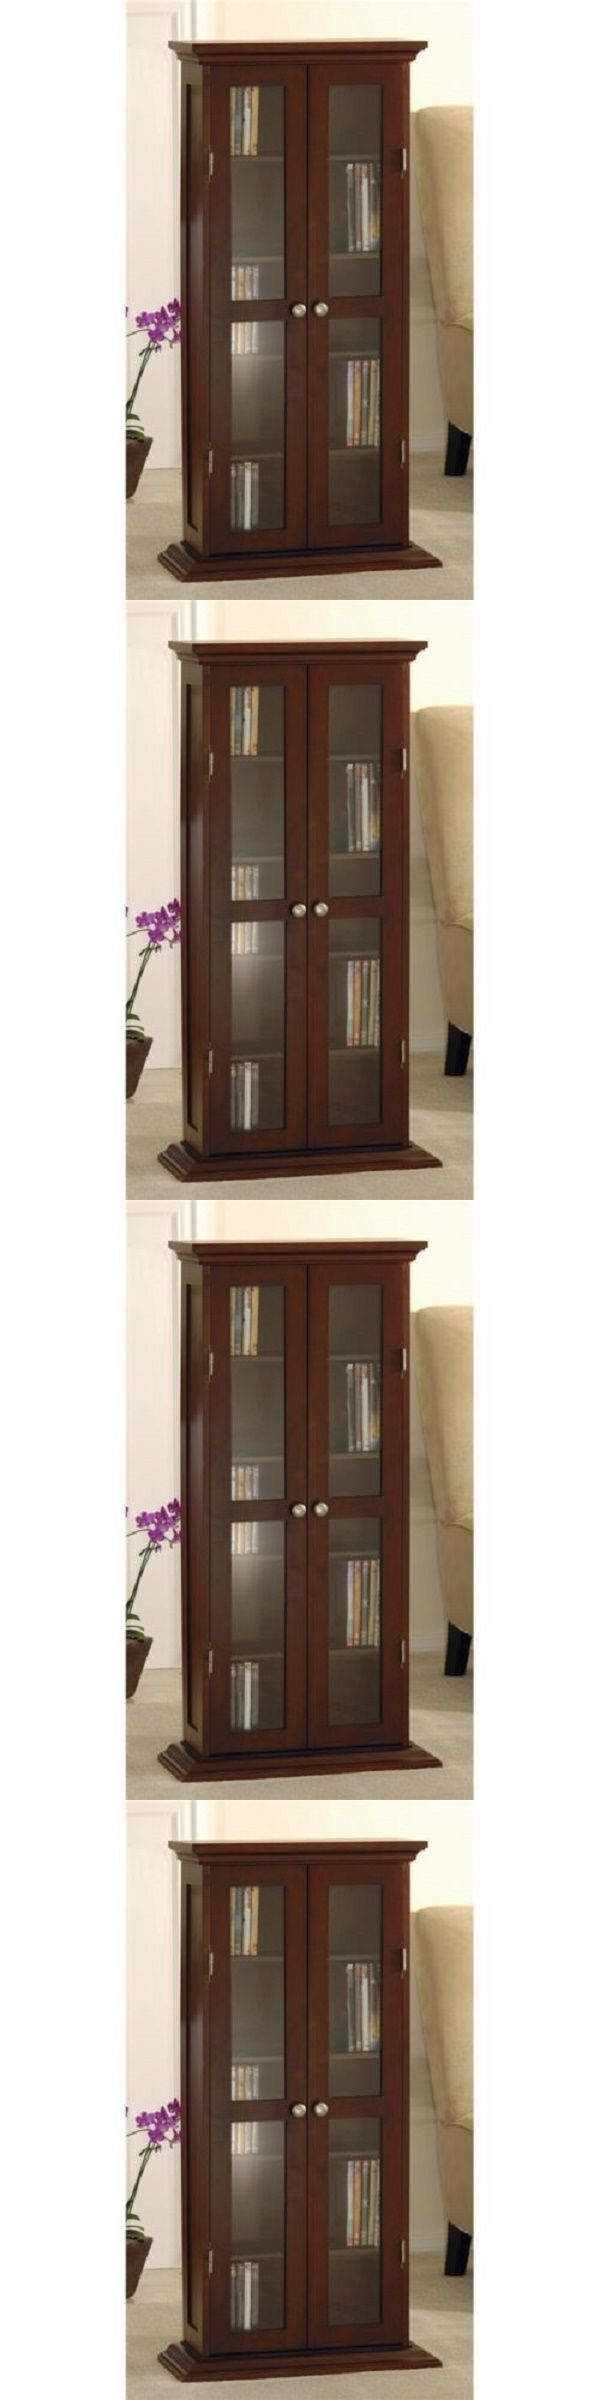 Media Cases and Storage: Wood And Glass Dvd Cd Cabinet Walnut Furniture Organize Storage Cabinet Decor -> BUY IT NOW ONLY: $131.96 on eBay!